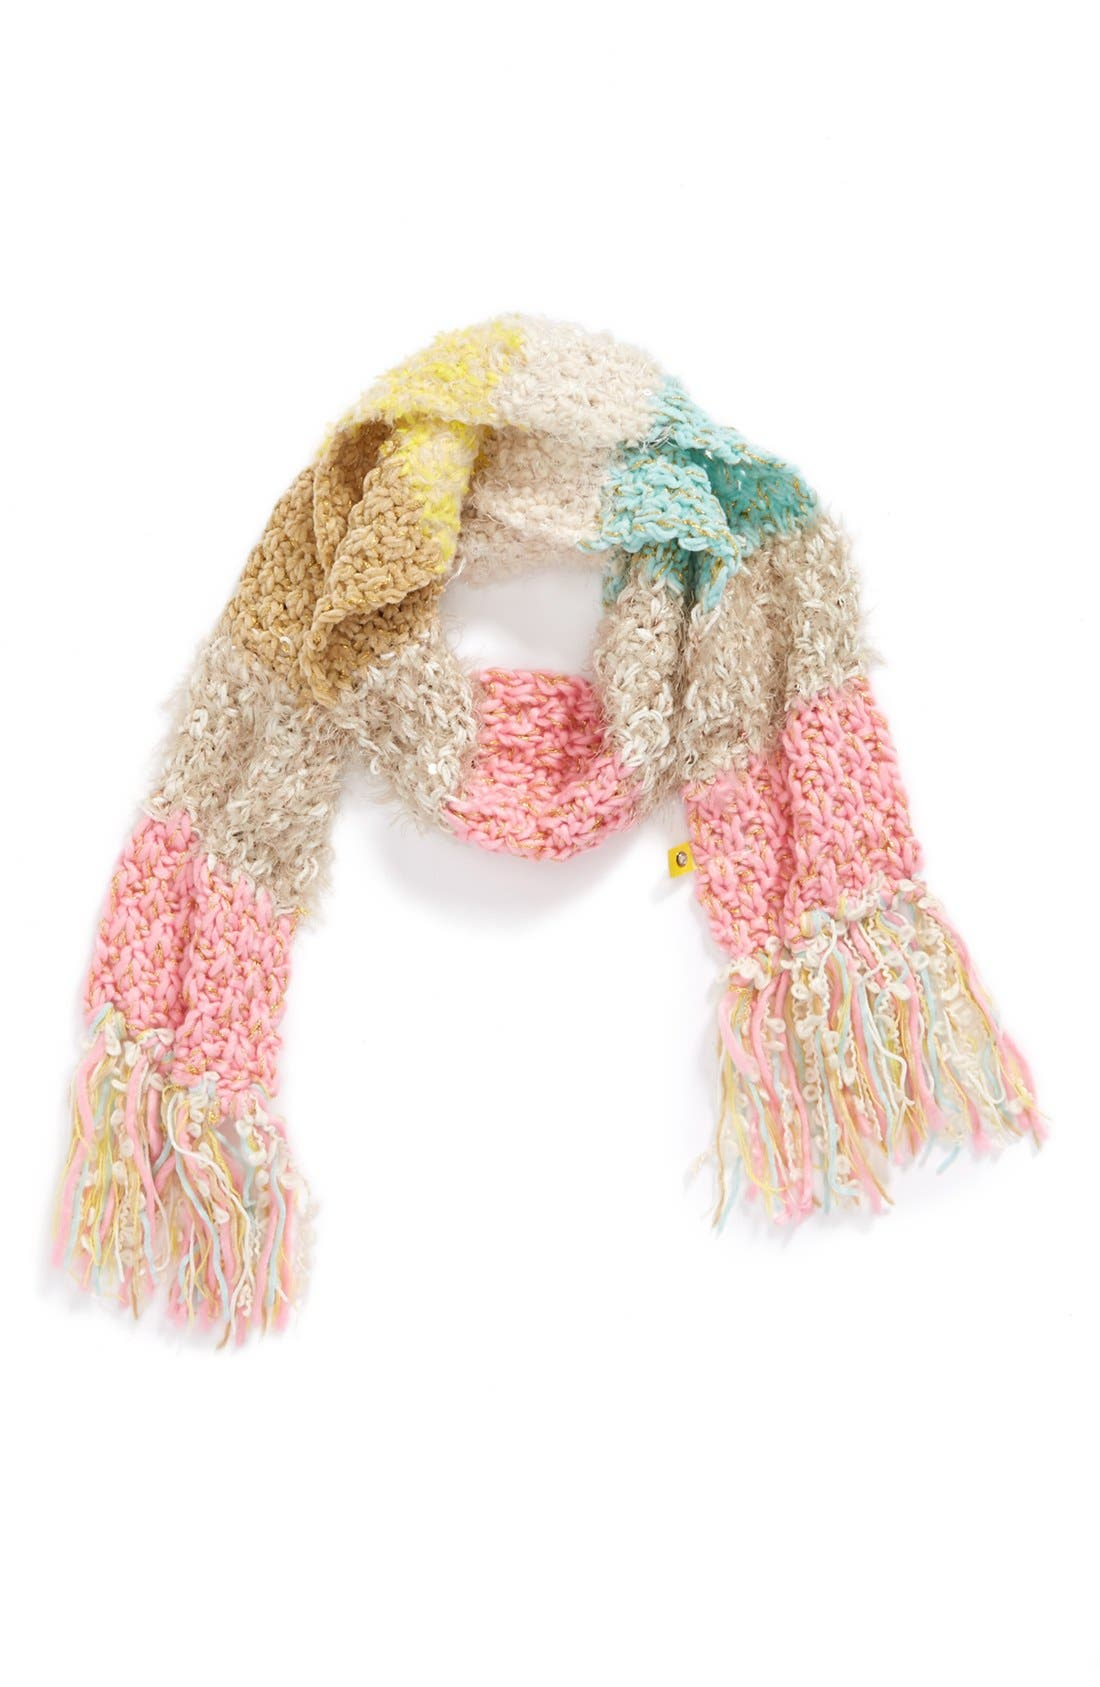 Alternate Image 1 Selected - Peace of Cake Knit Scarf (Girls)